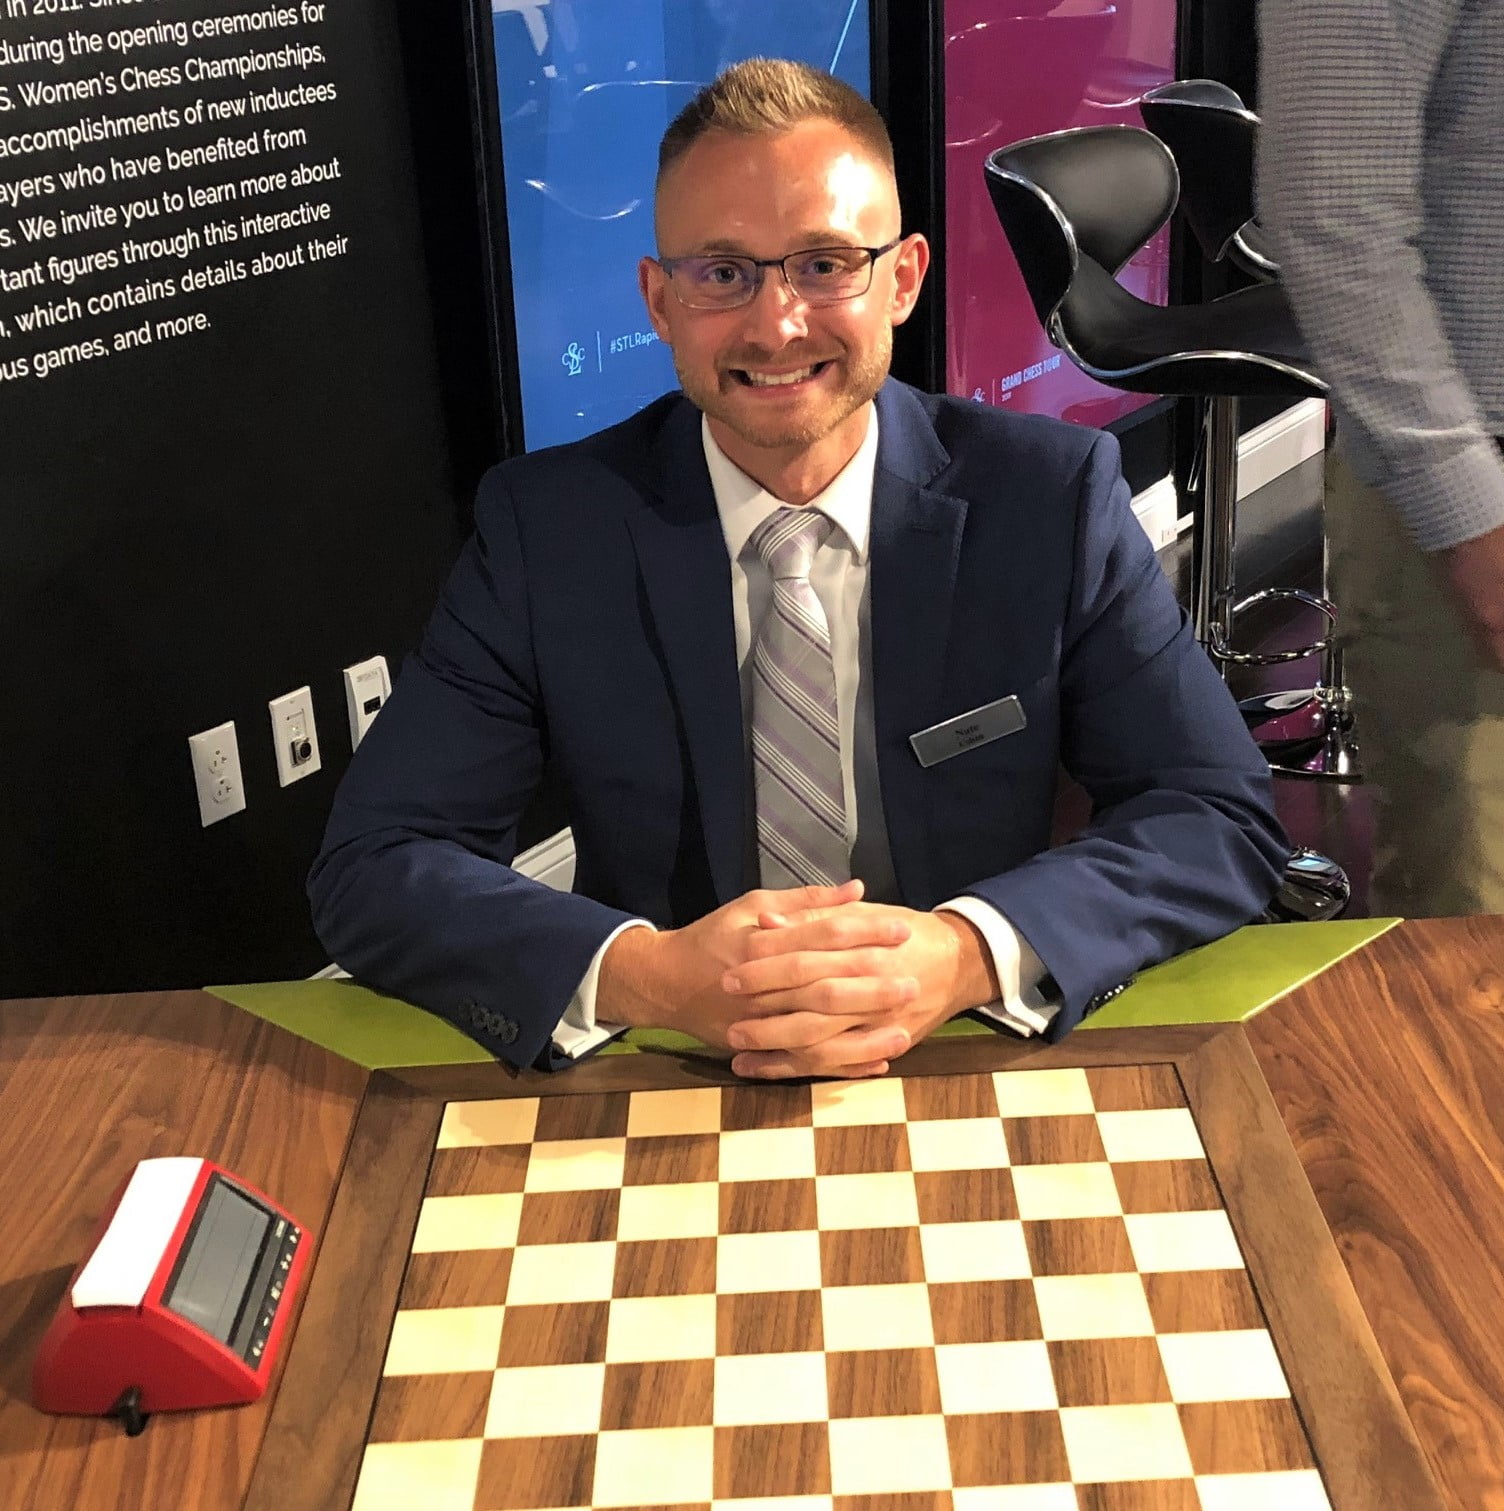 Cohen Architectural Woodworking's Nate Cohen Creates New Chess Tables for Grand Chess Tour Events in St. Louis